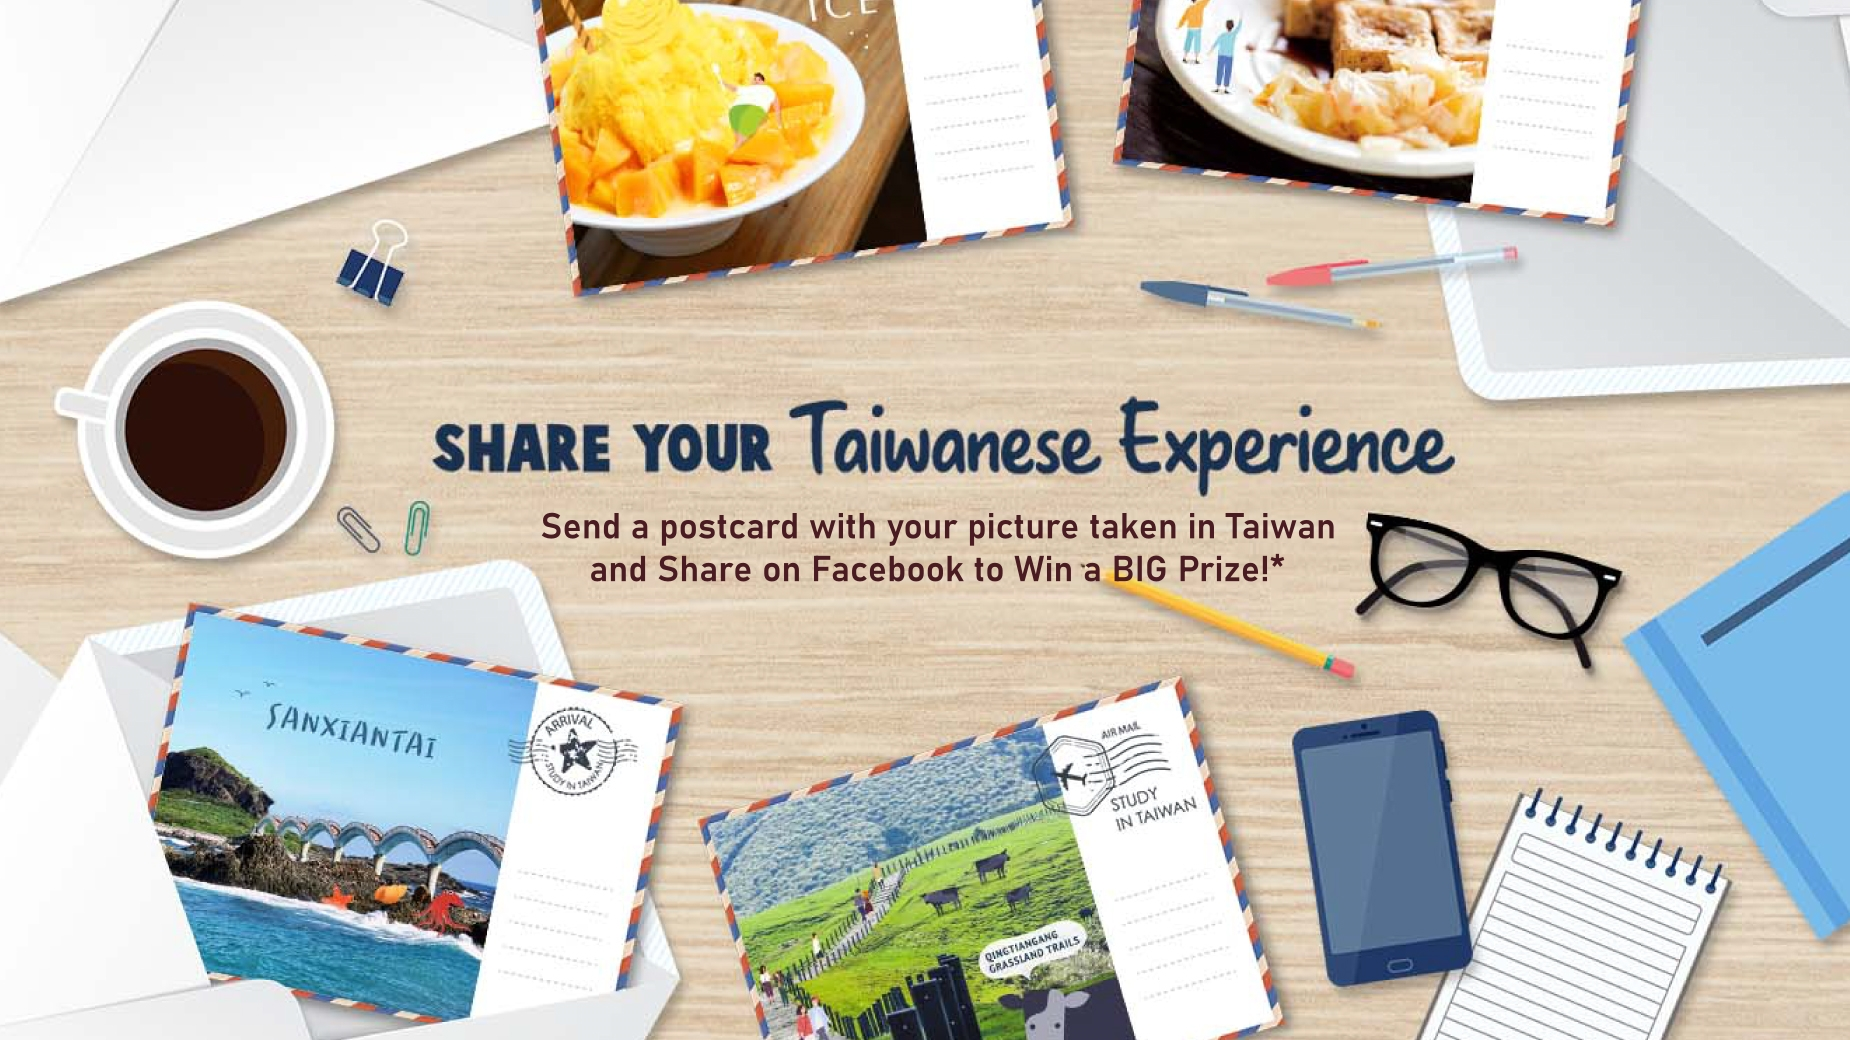 Share your Taiwanese Experience and Win Big Prize